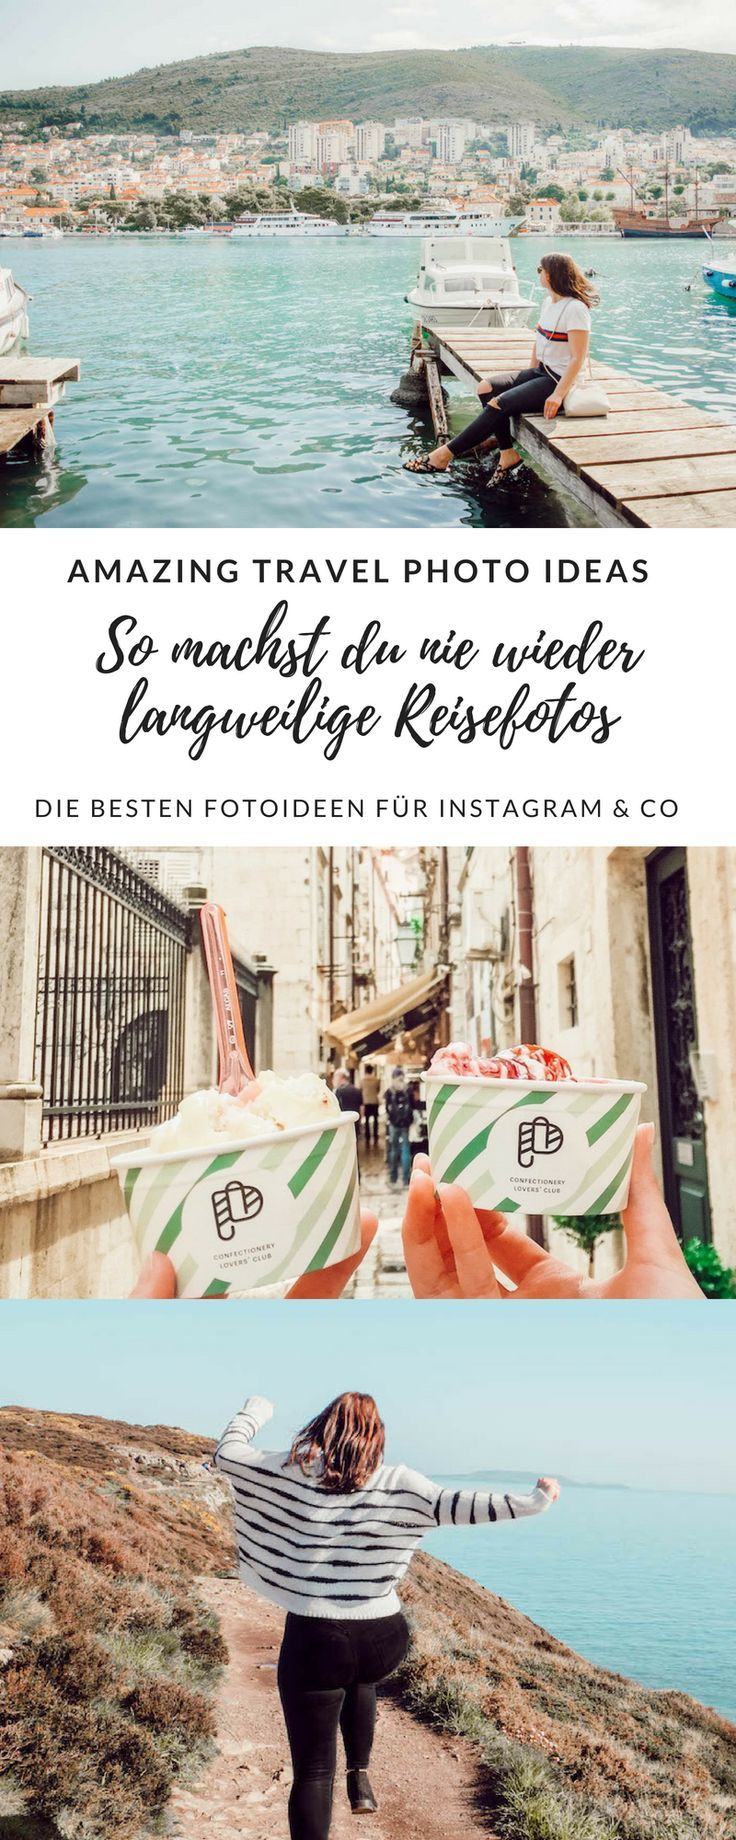 15 Amazing Travel Photo Ideas: Nie wieder langweilige Reisefotos